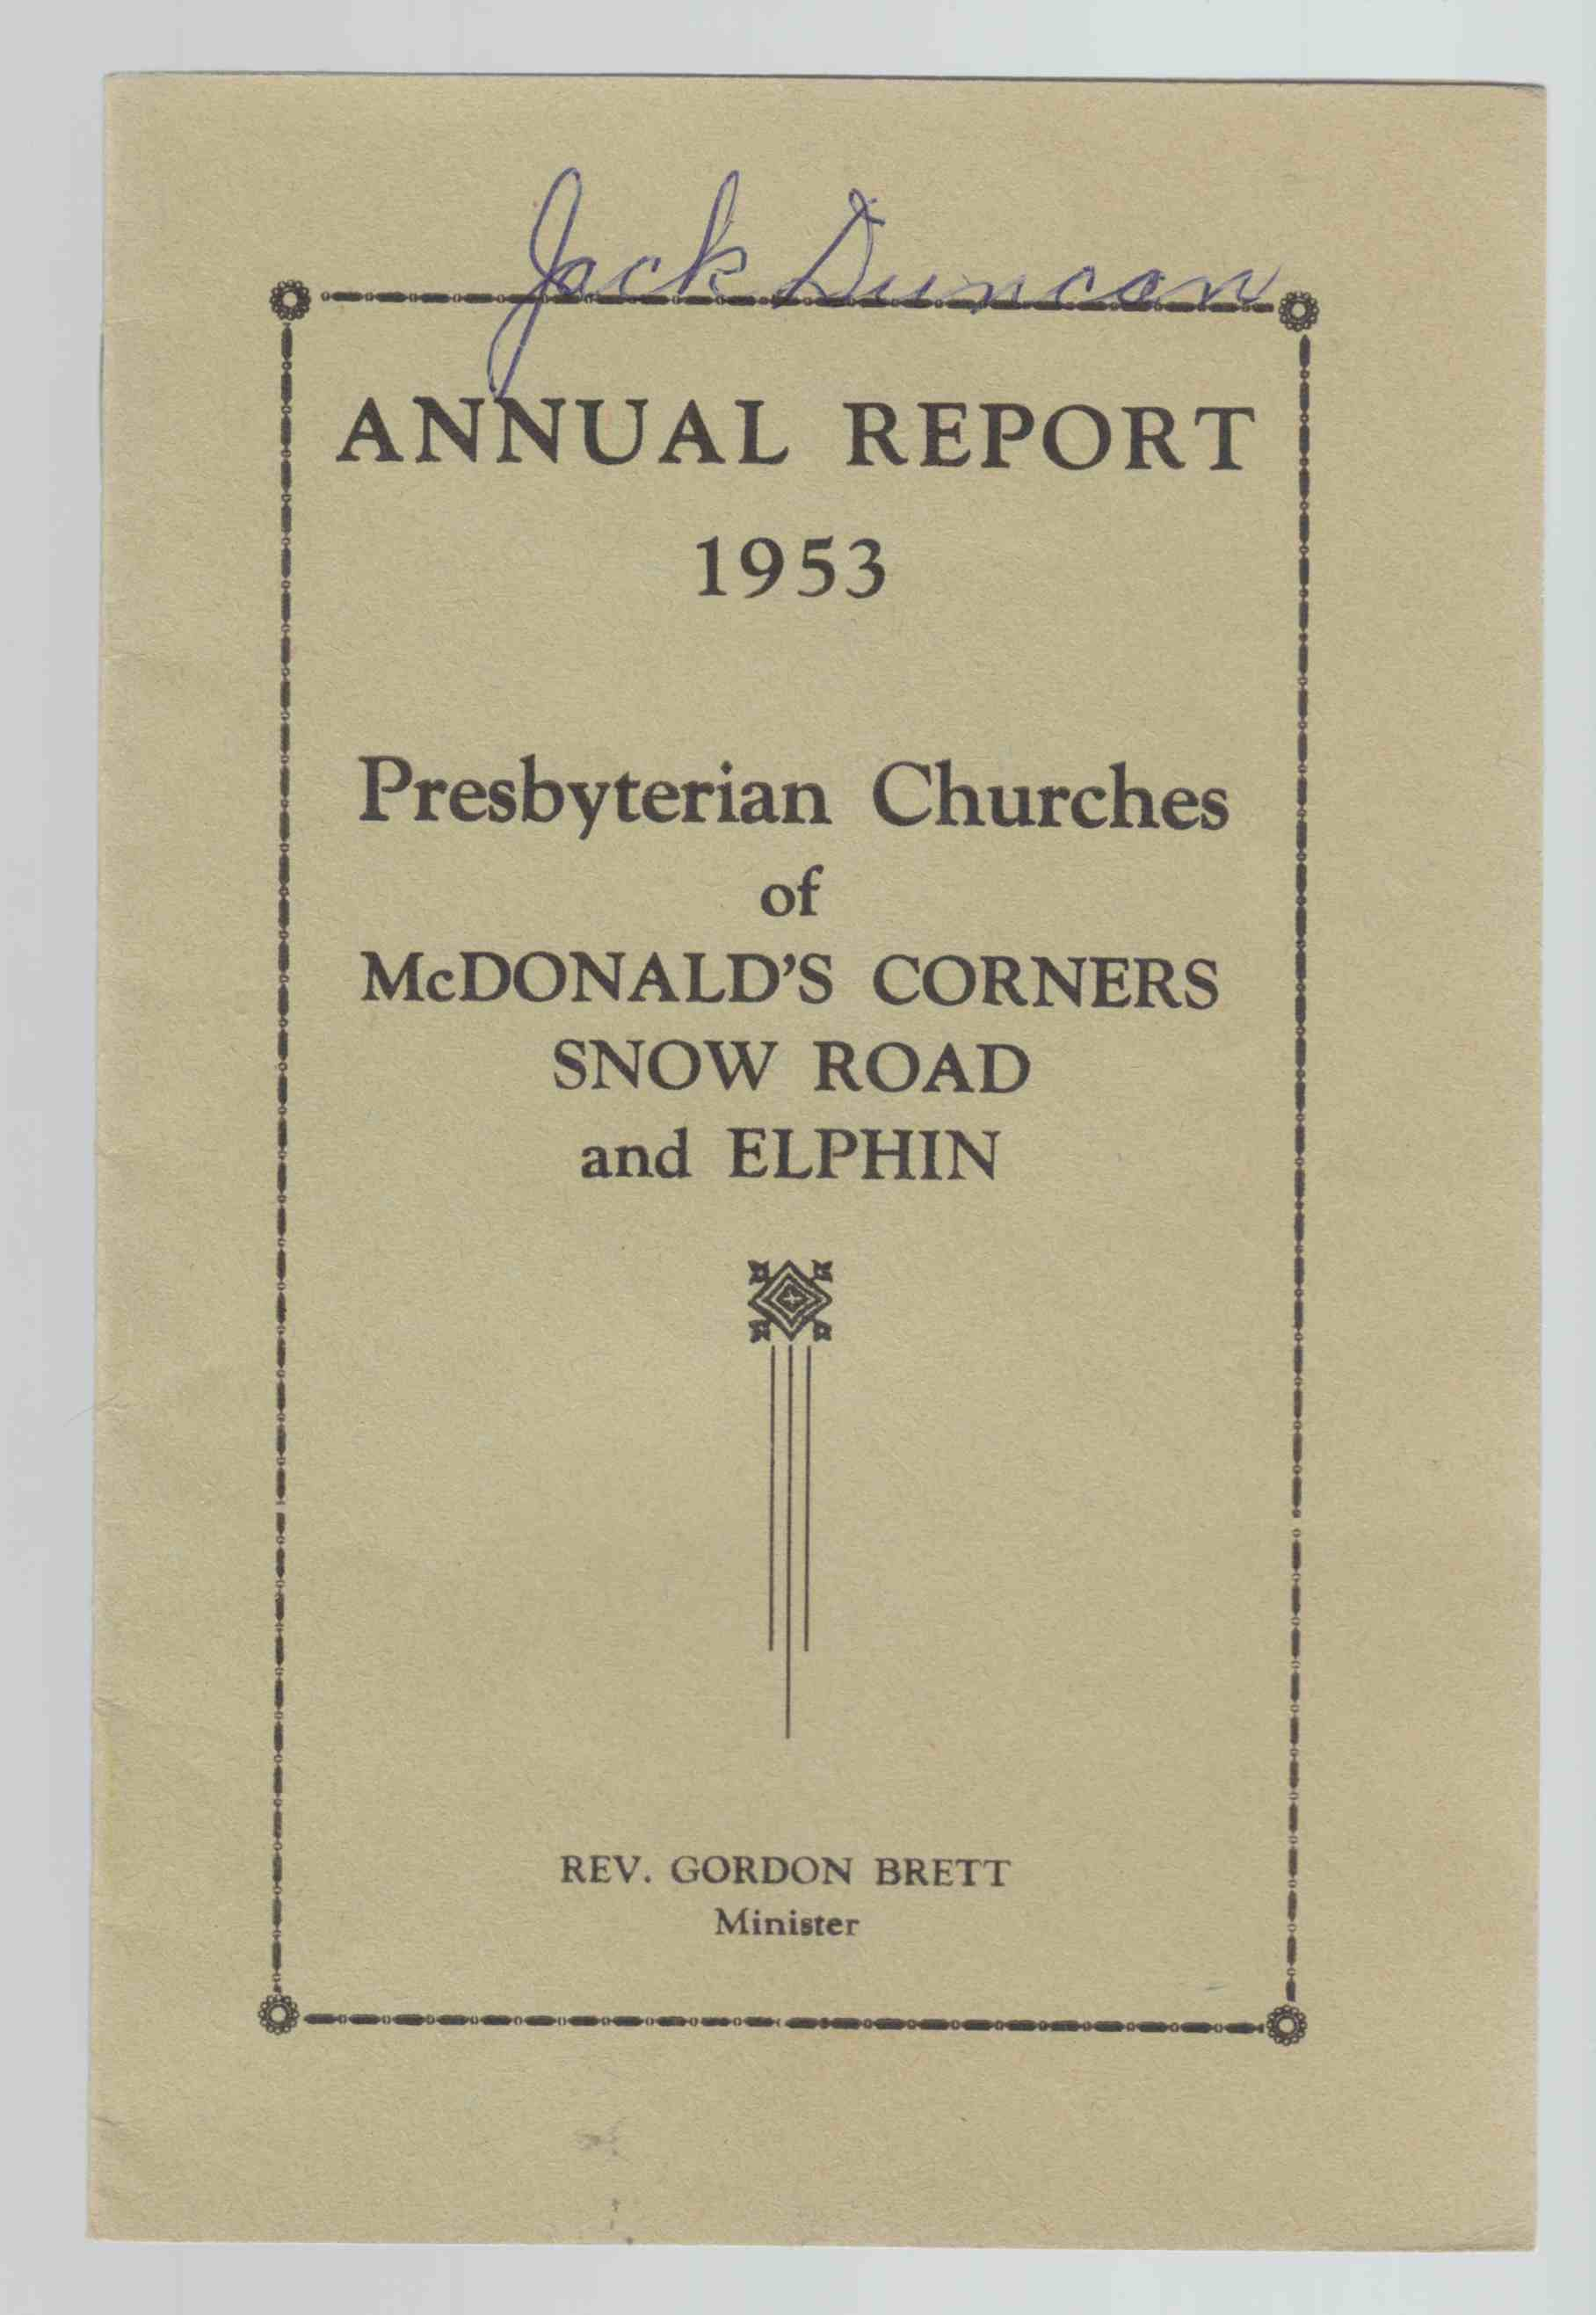 Image for Annual Report 1953 Presbyterian Churches of Mcdonald's Corners, Snow Road and Elphin